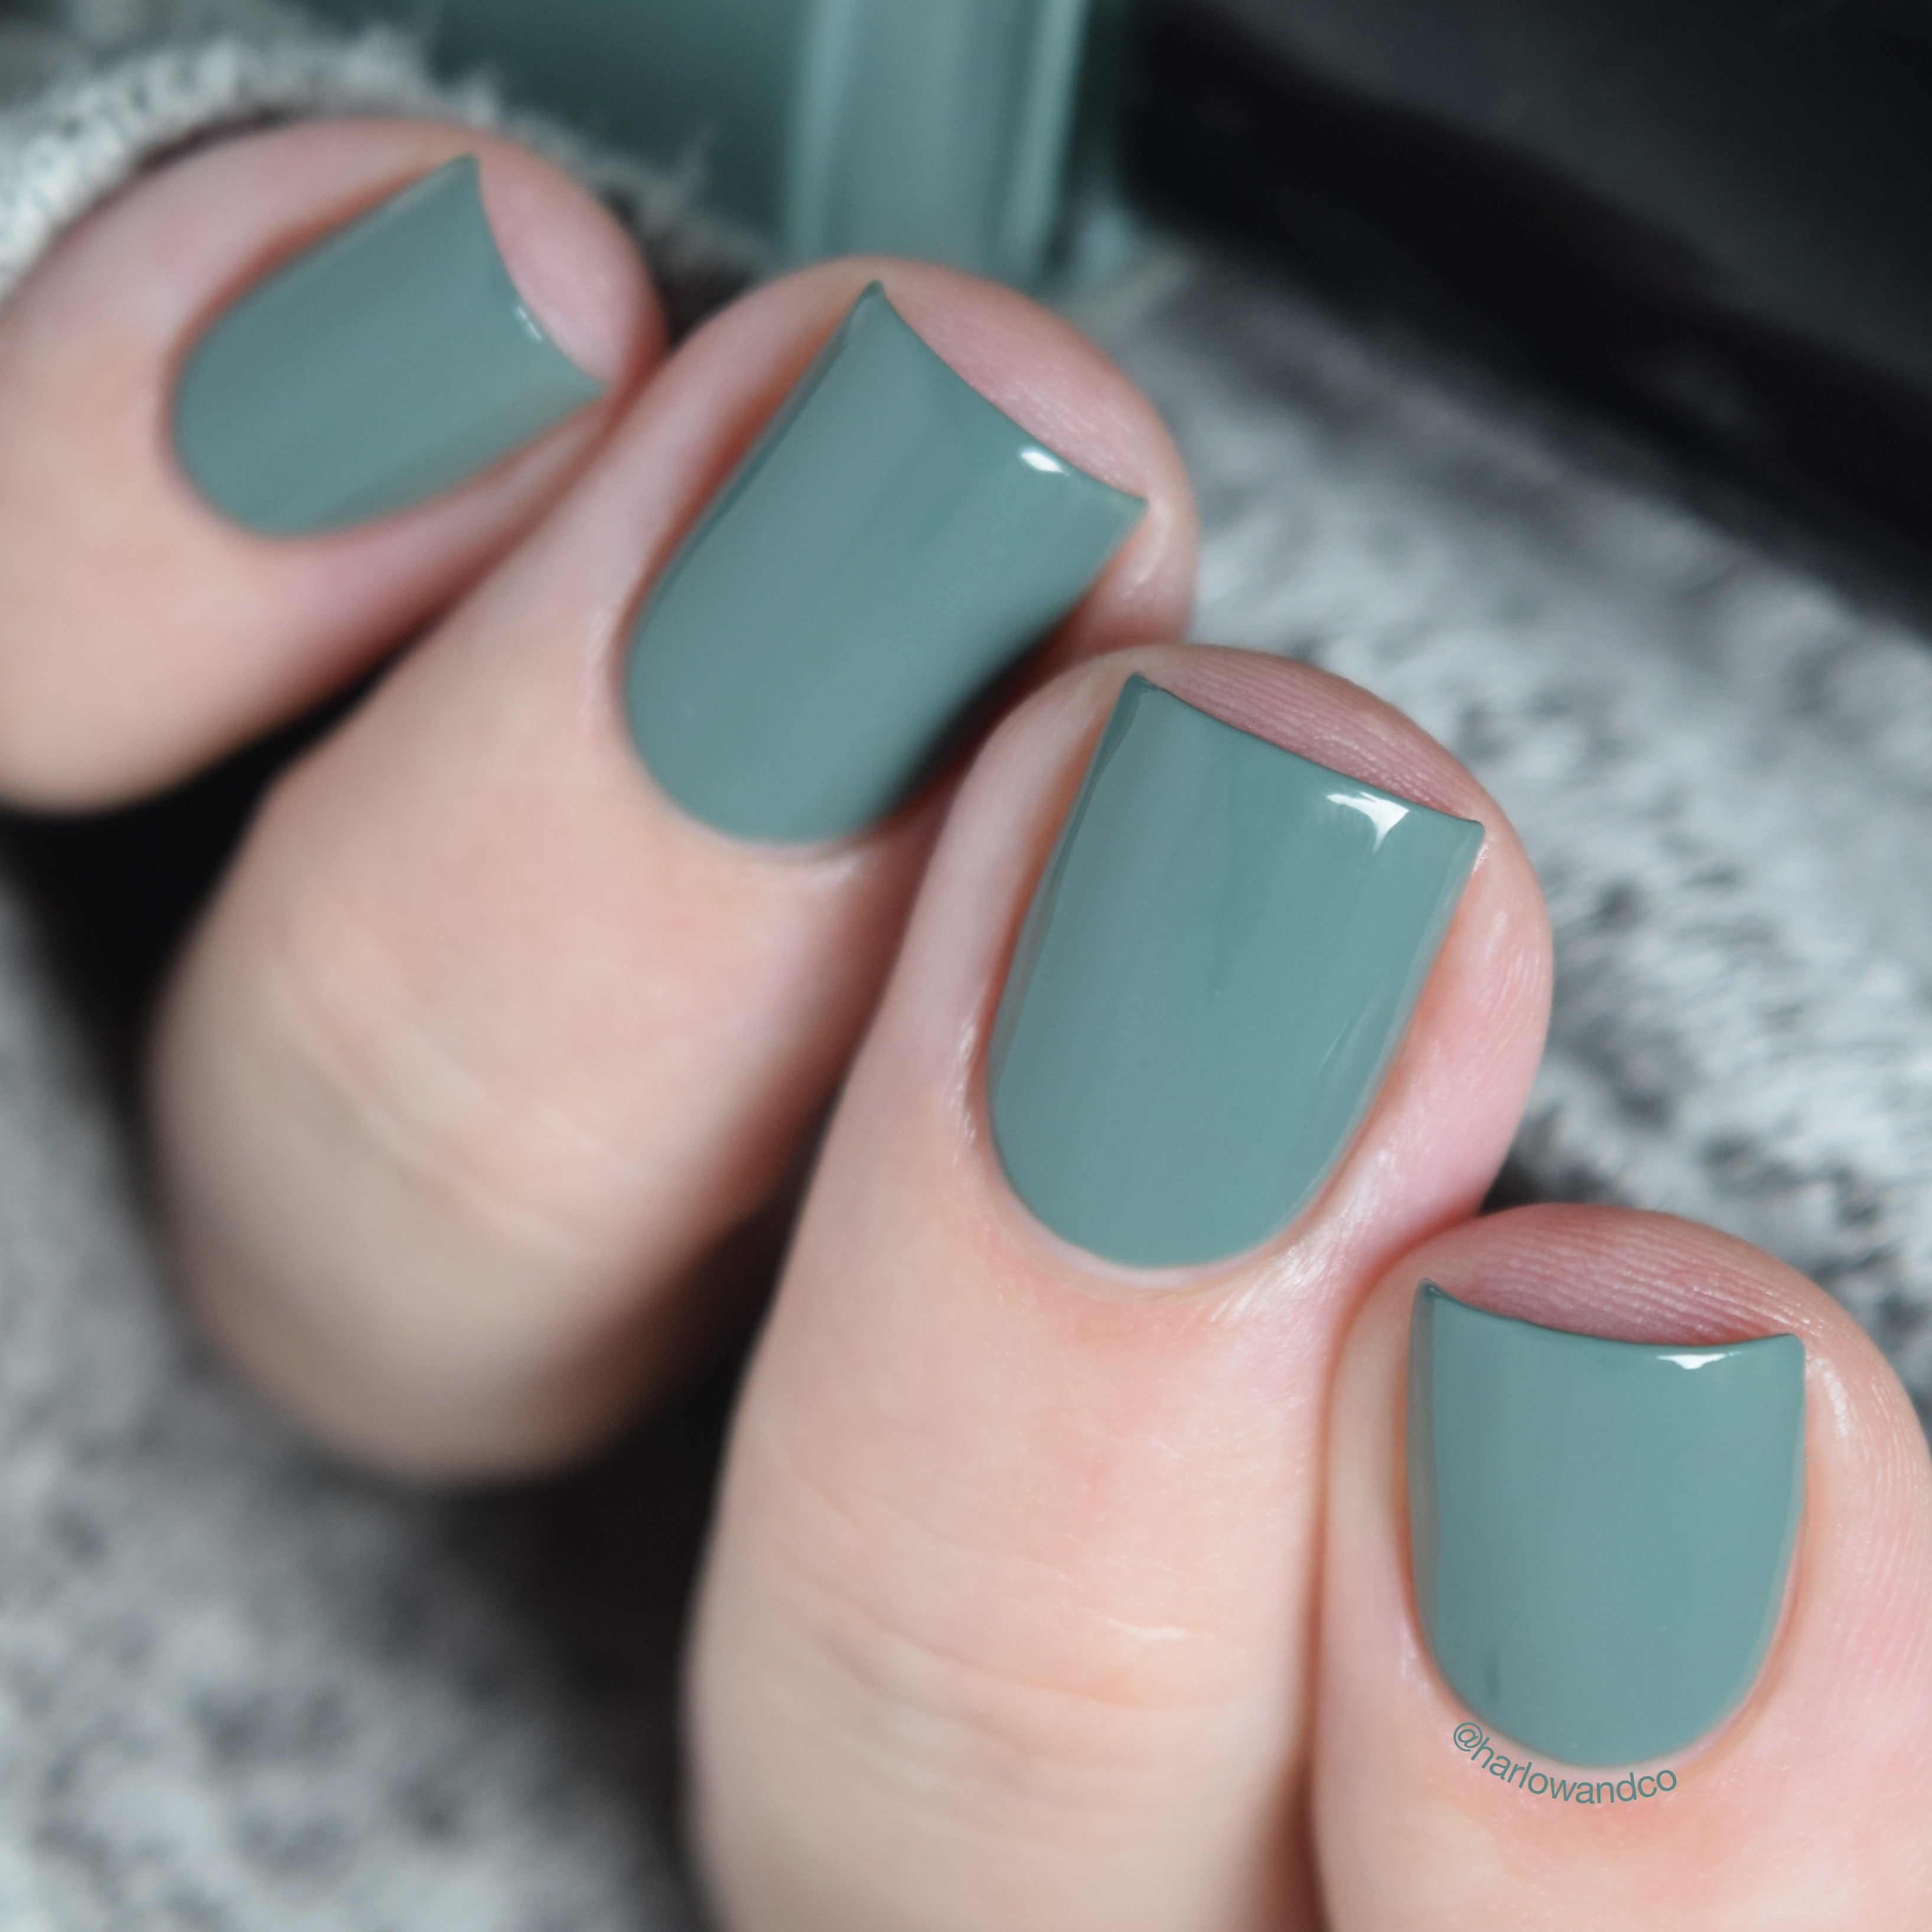 Cirque Colors Rockaway dusty teal creme nail polish Metropolis FW18 Collection